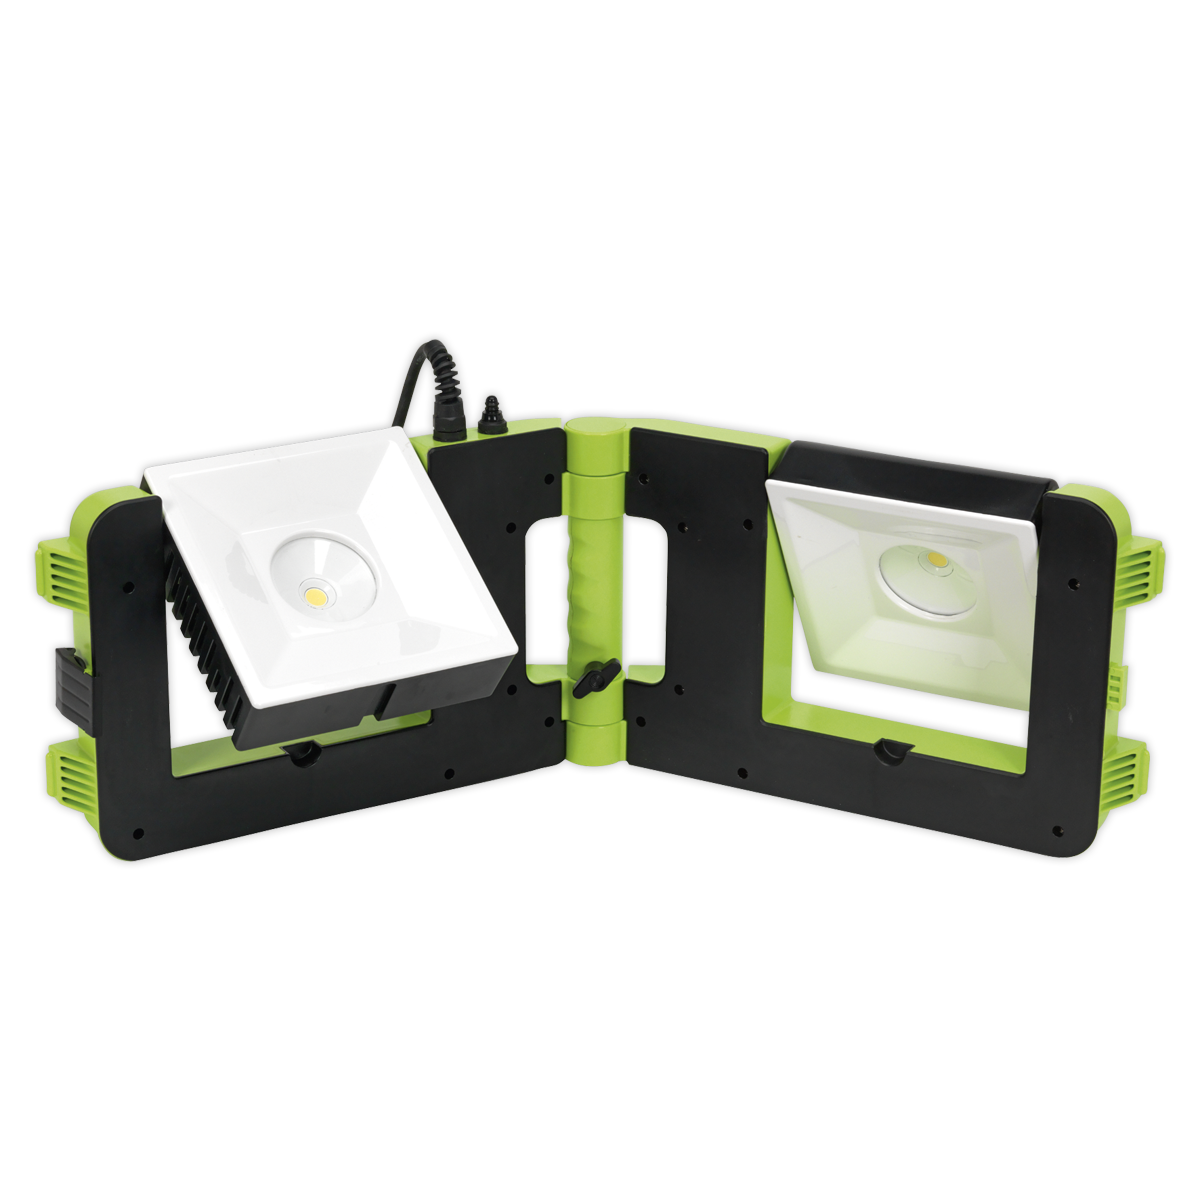 Floodlight 60W COB 230V Folding Case